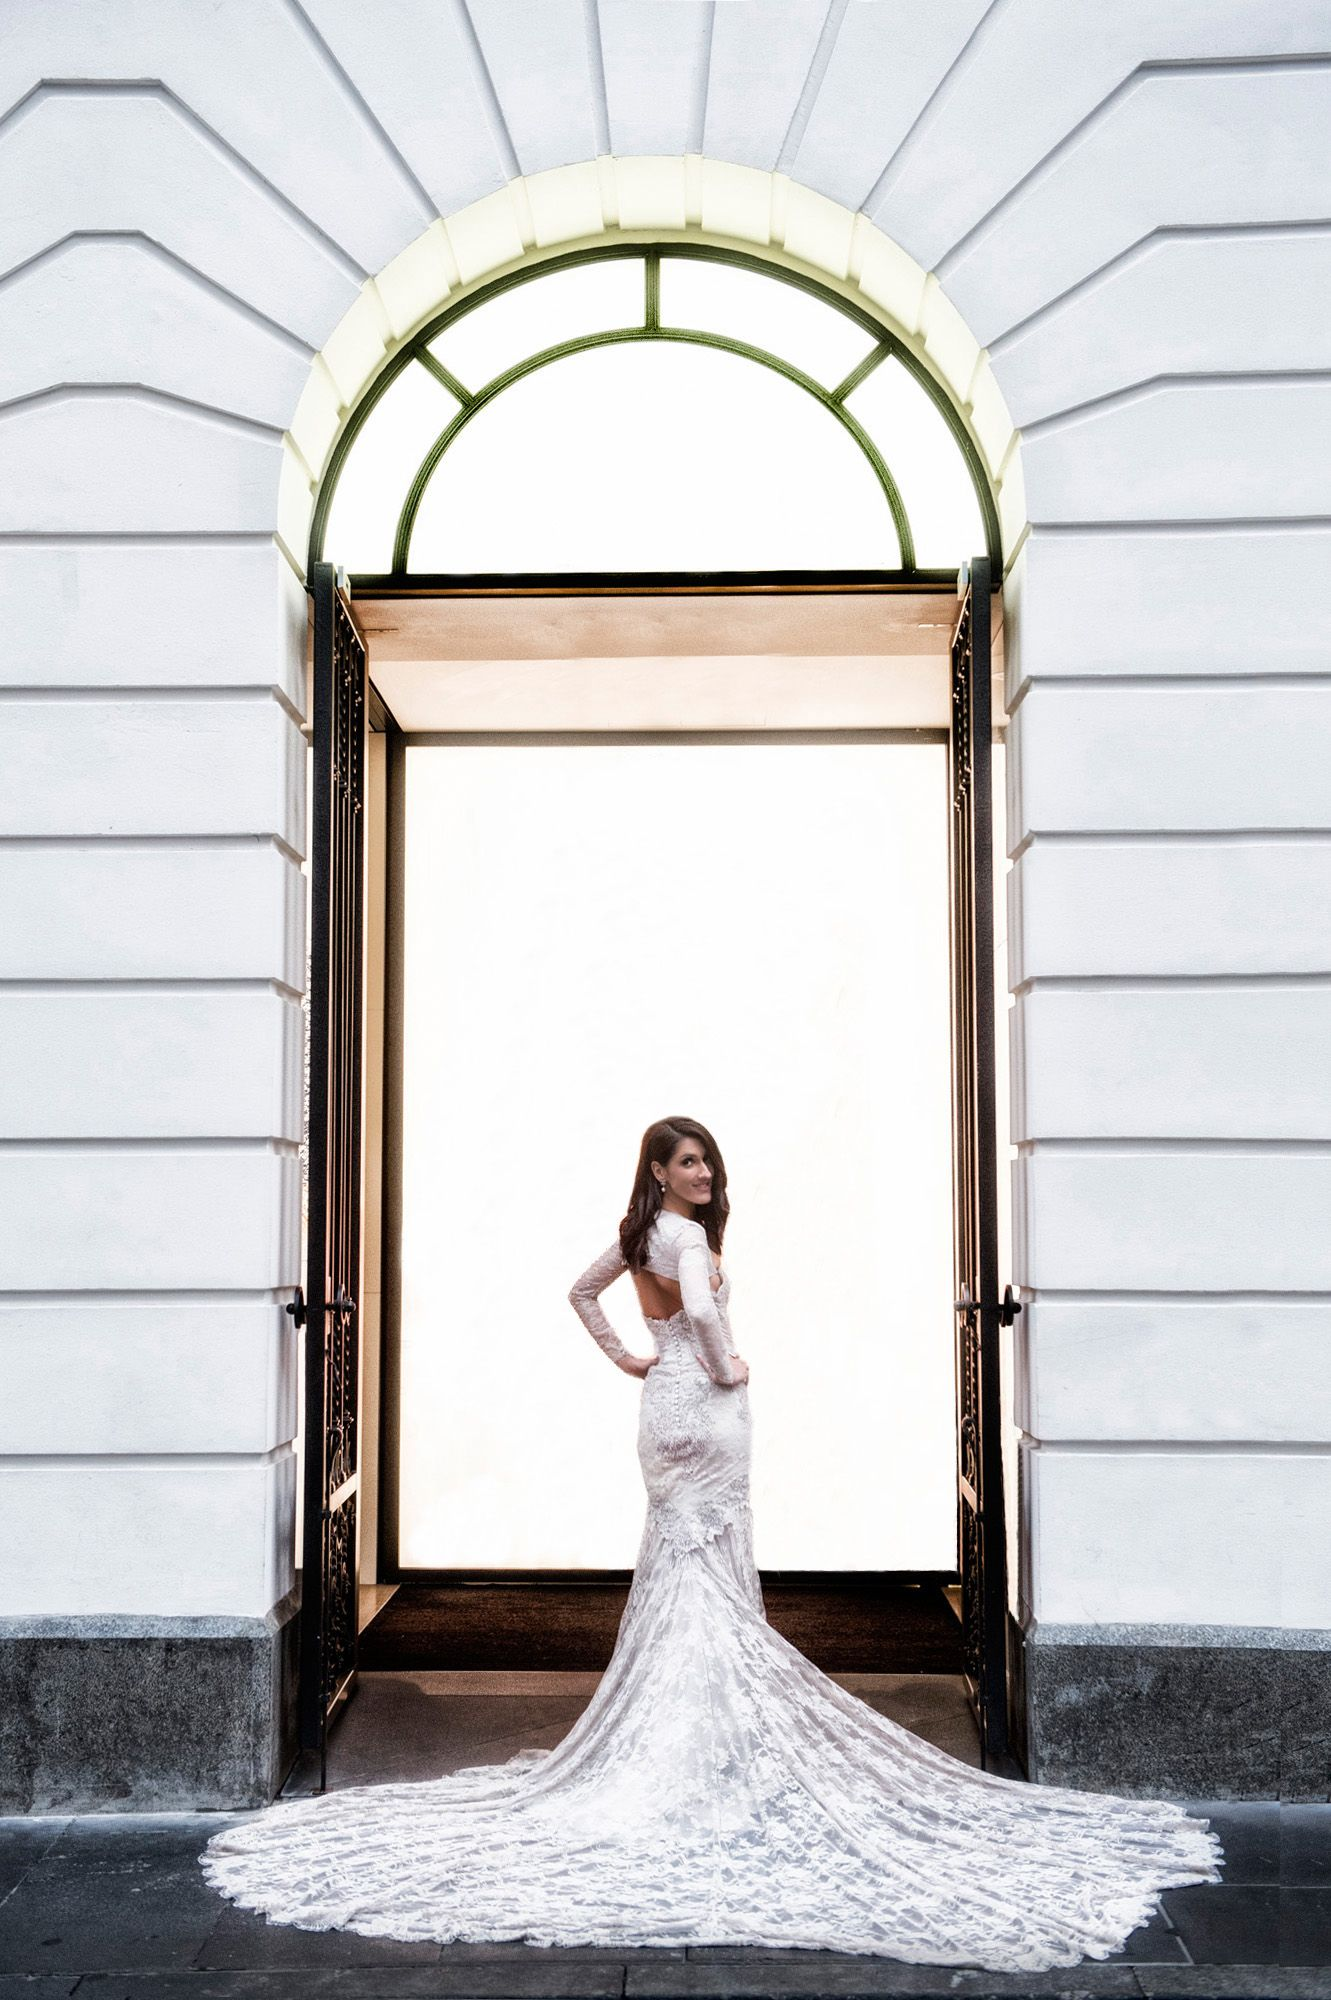 Bridal Couture, Designer Couture Wedding Gowns, Designer Couture Wedding Dresses, Armadale, Melbourne lace wedding dress custom made by  http://vincenzopintaudicouture.com